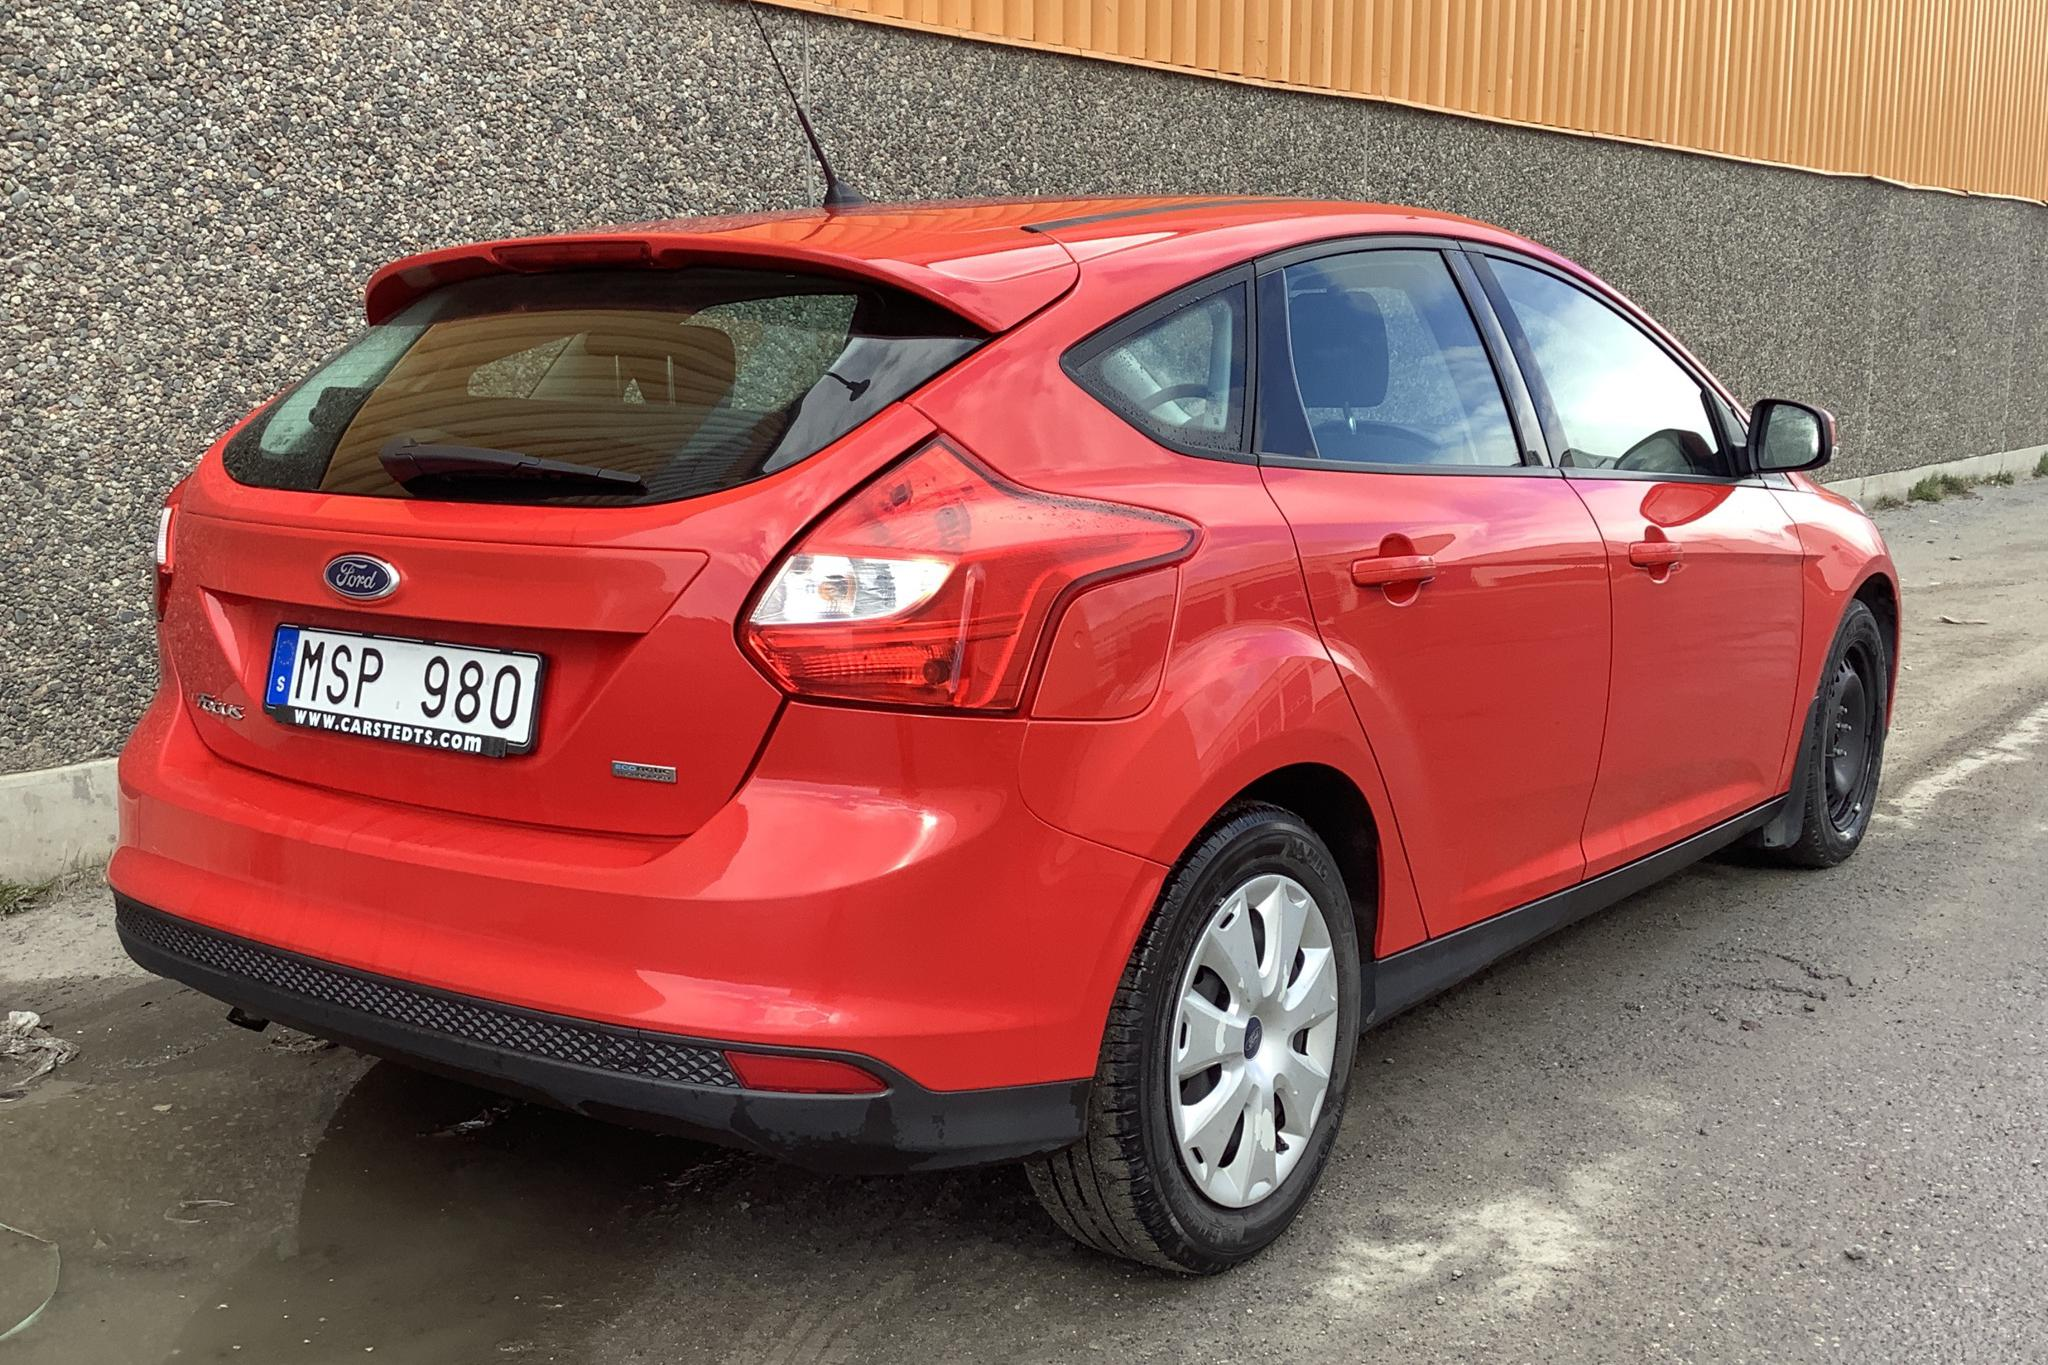 Ford Focus 1.0 EcoBoost 5dr (100hk) - 64 480 km - Manual - red - 2012